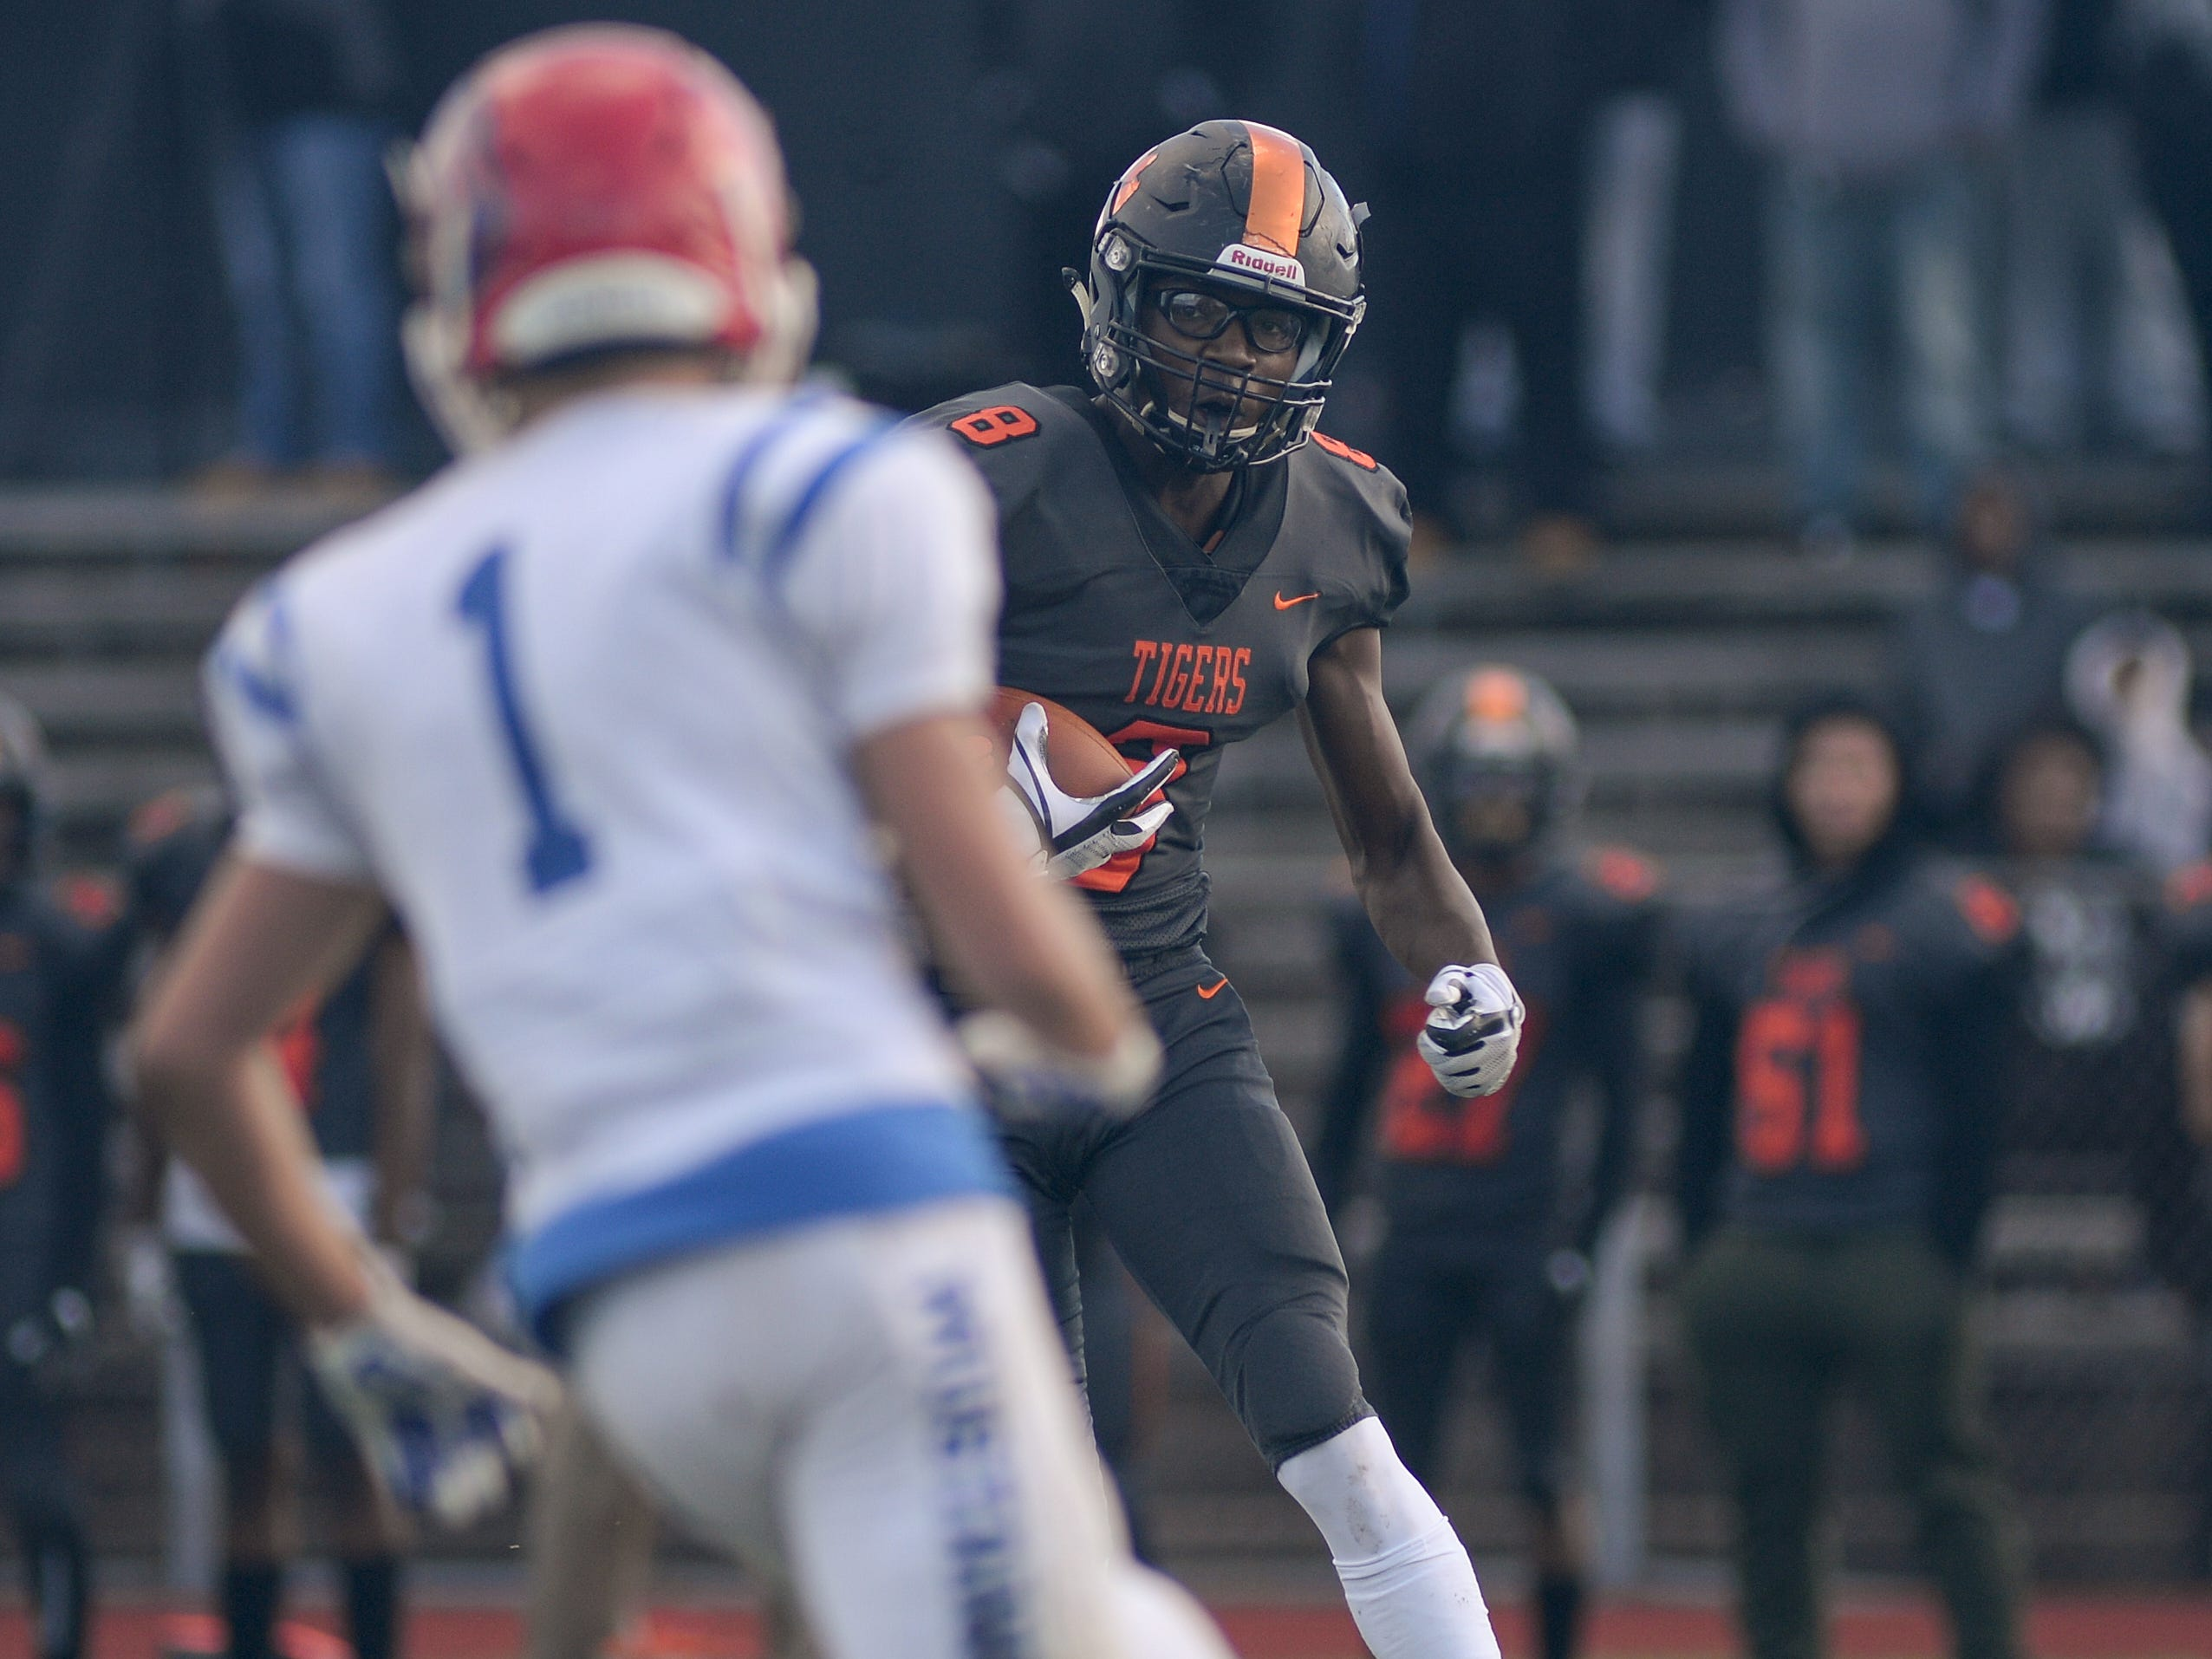 Woodrow Wilson's Stanley King runs the ball after making a reception during Saturday's South Jersey Group 3 first round game against Triton at Woodrow Wilson High School, Nov. 3, 2018.